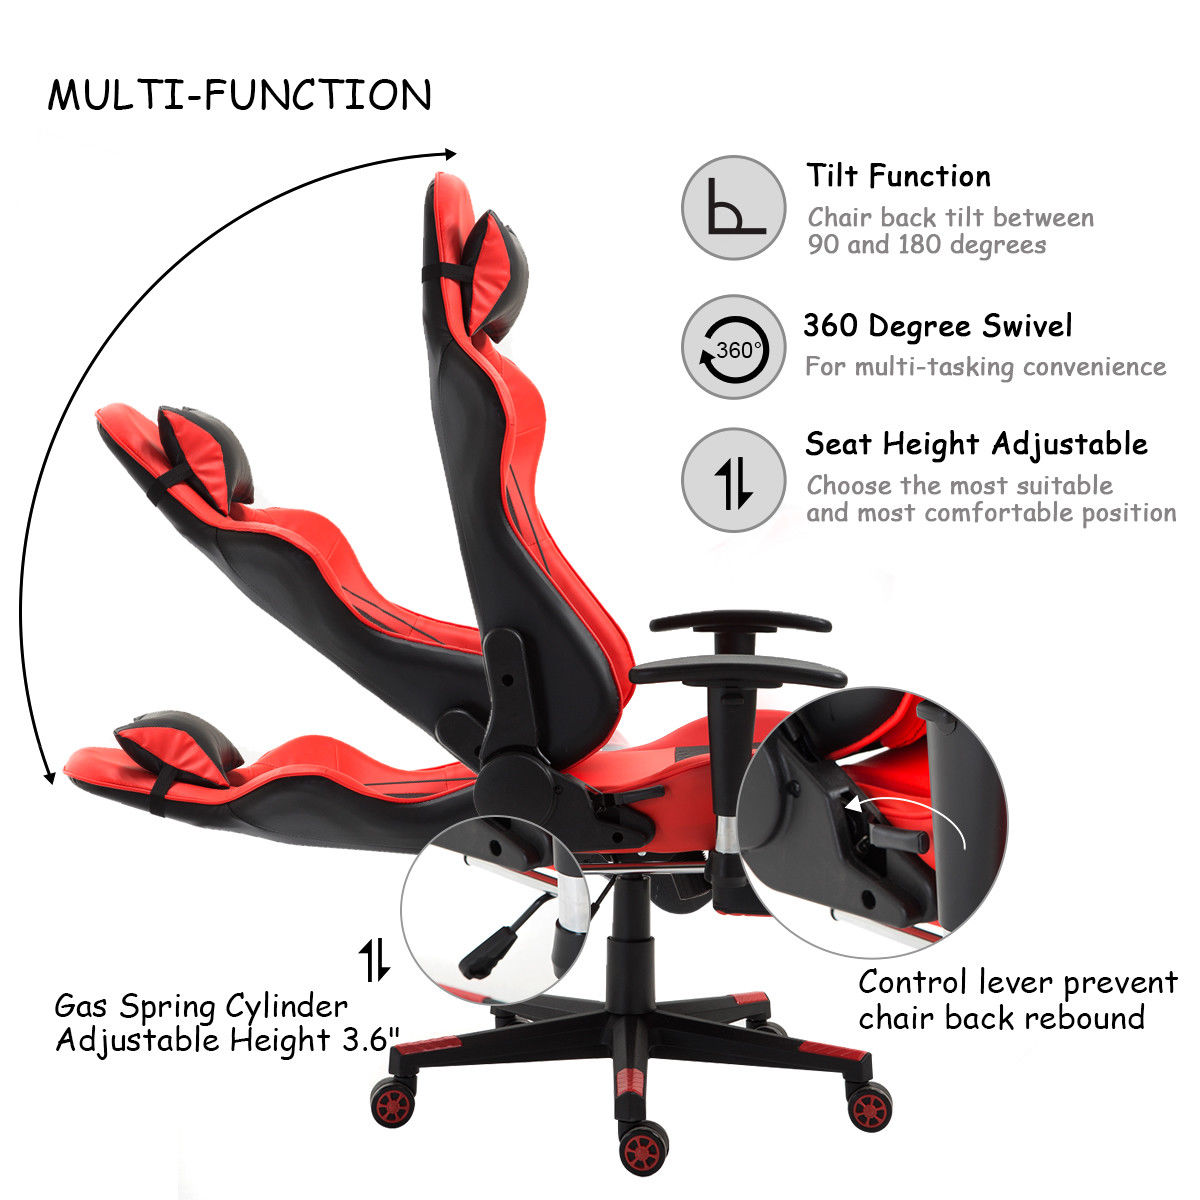 Racing Office Chairs Deck Table And Giantex Ergonomic Gaming Chair High Back With Lumbar Support Footrest Modern Reclining Furniture Hw56576re In From